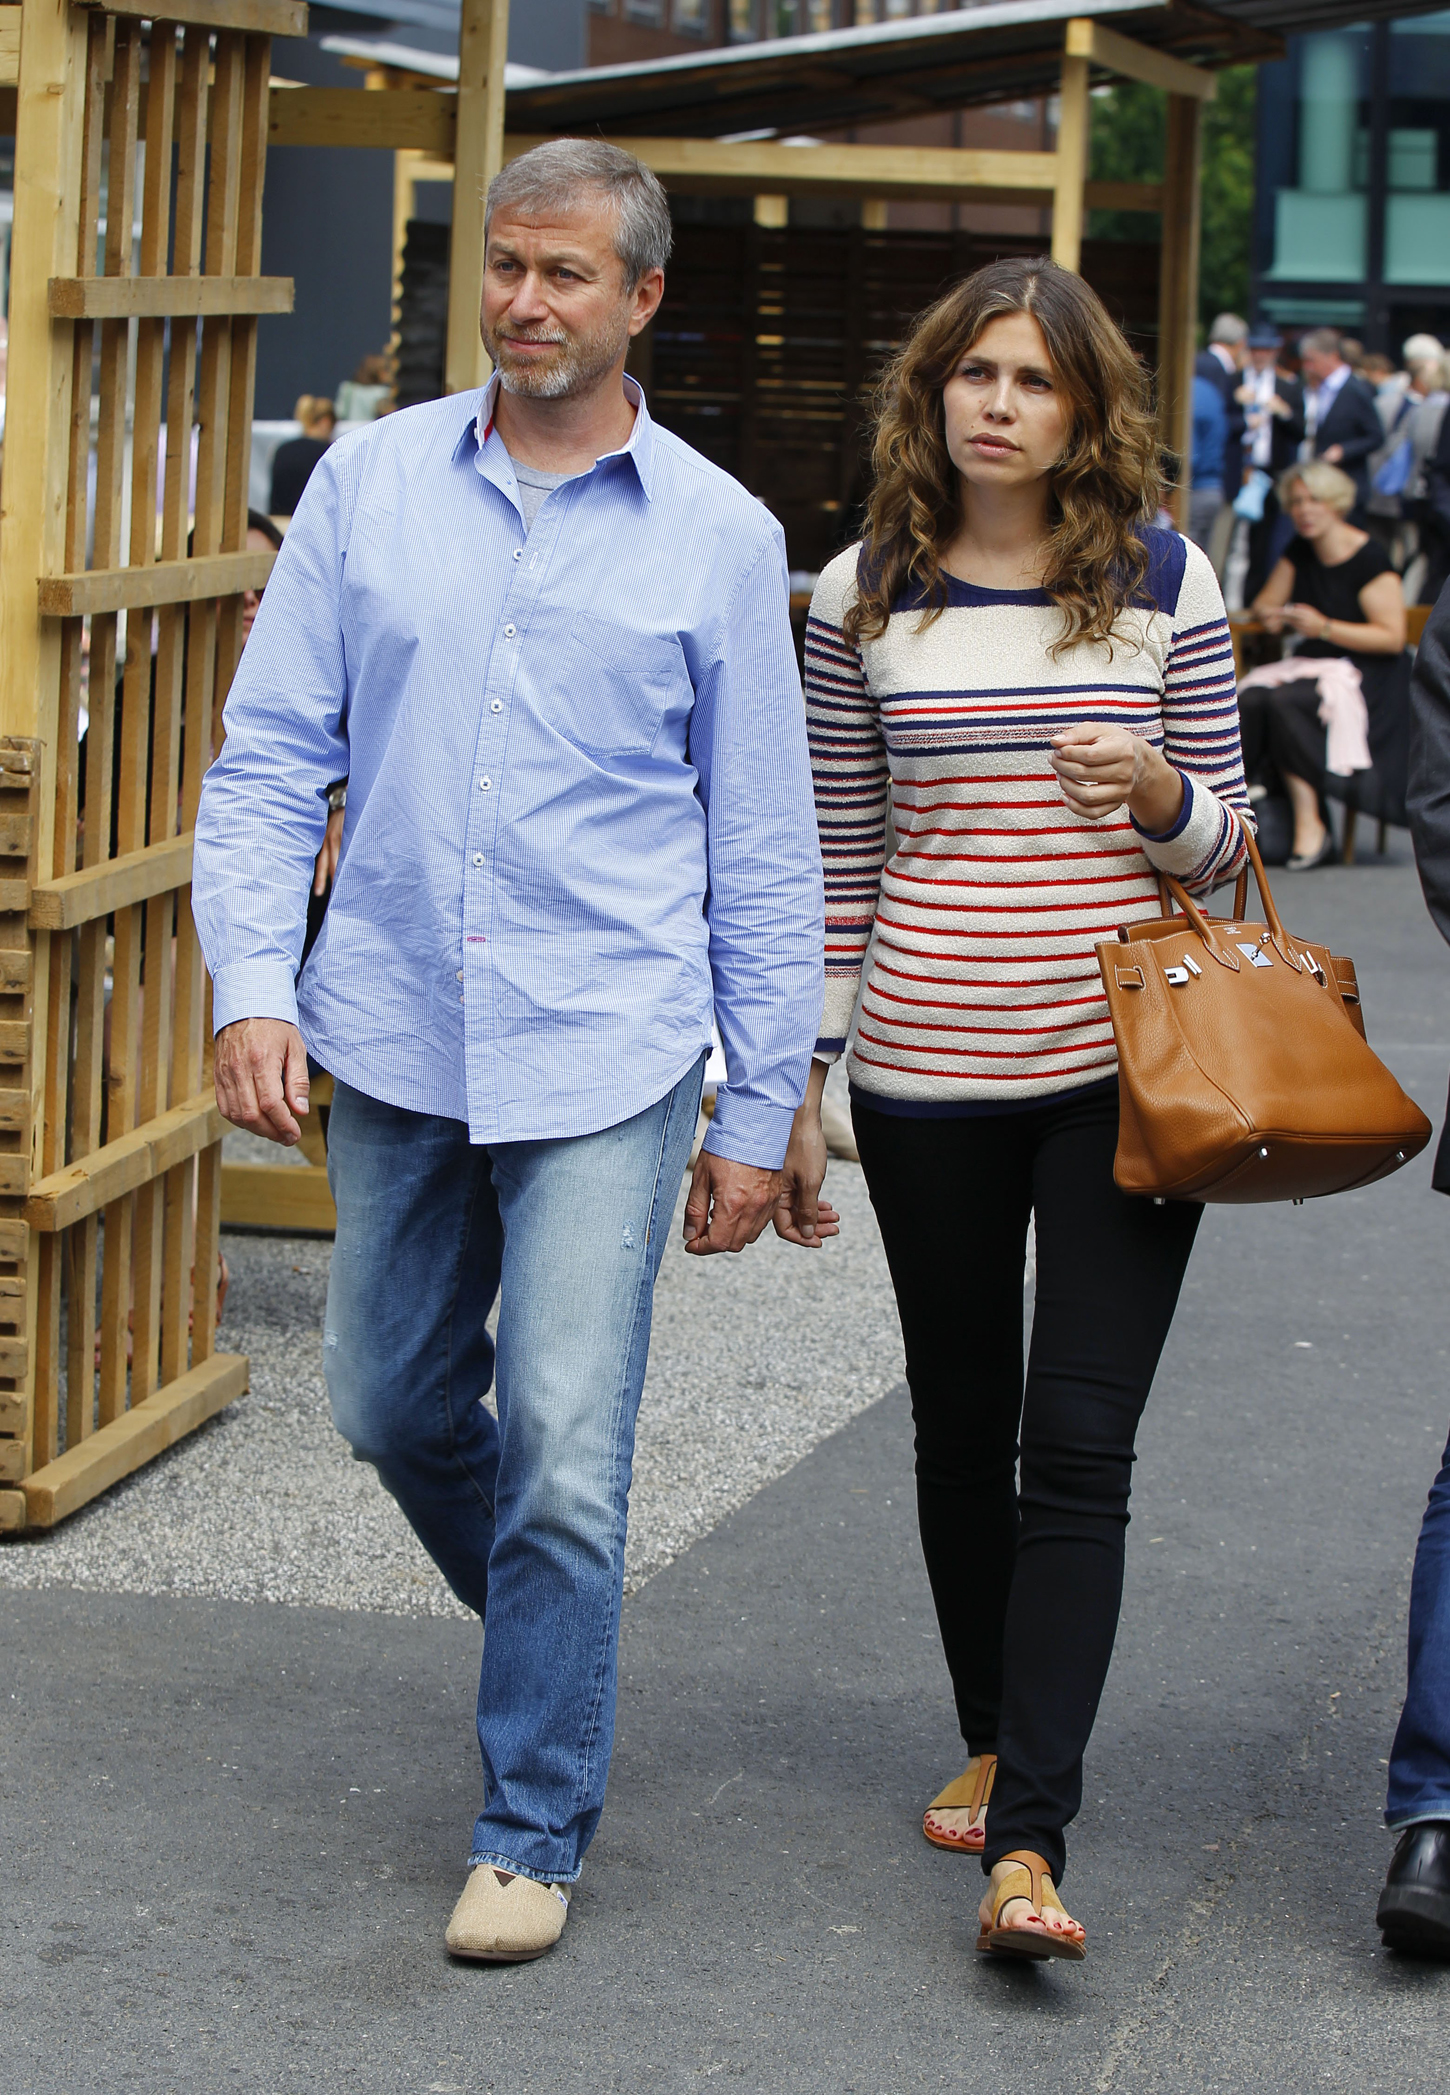 Art Basel 2013, the most important Art Trade Fair in the World with Celebrities: Russian Billionaire  Roman Abramowitsch with girlfriend Daria Zhukova, Image: 199886679, License: Rights-managed, Restrictions: *** Germany and Austria Out ***, Model Release: no, Credit line: Profimedia, SIPA USA